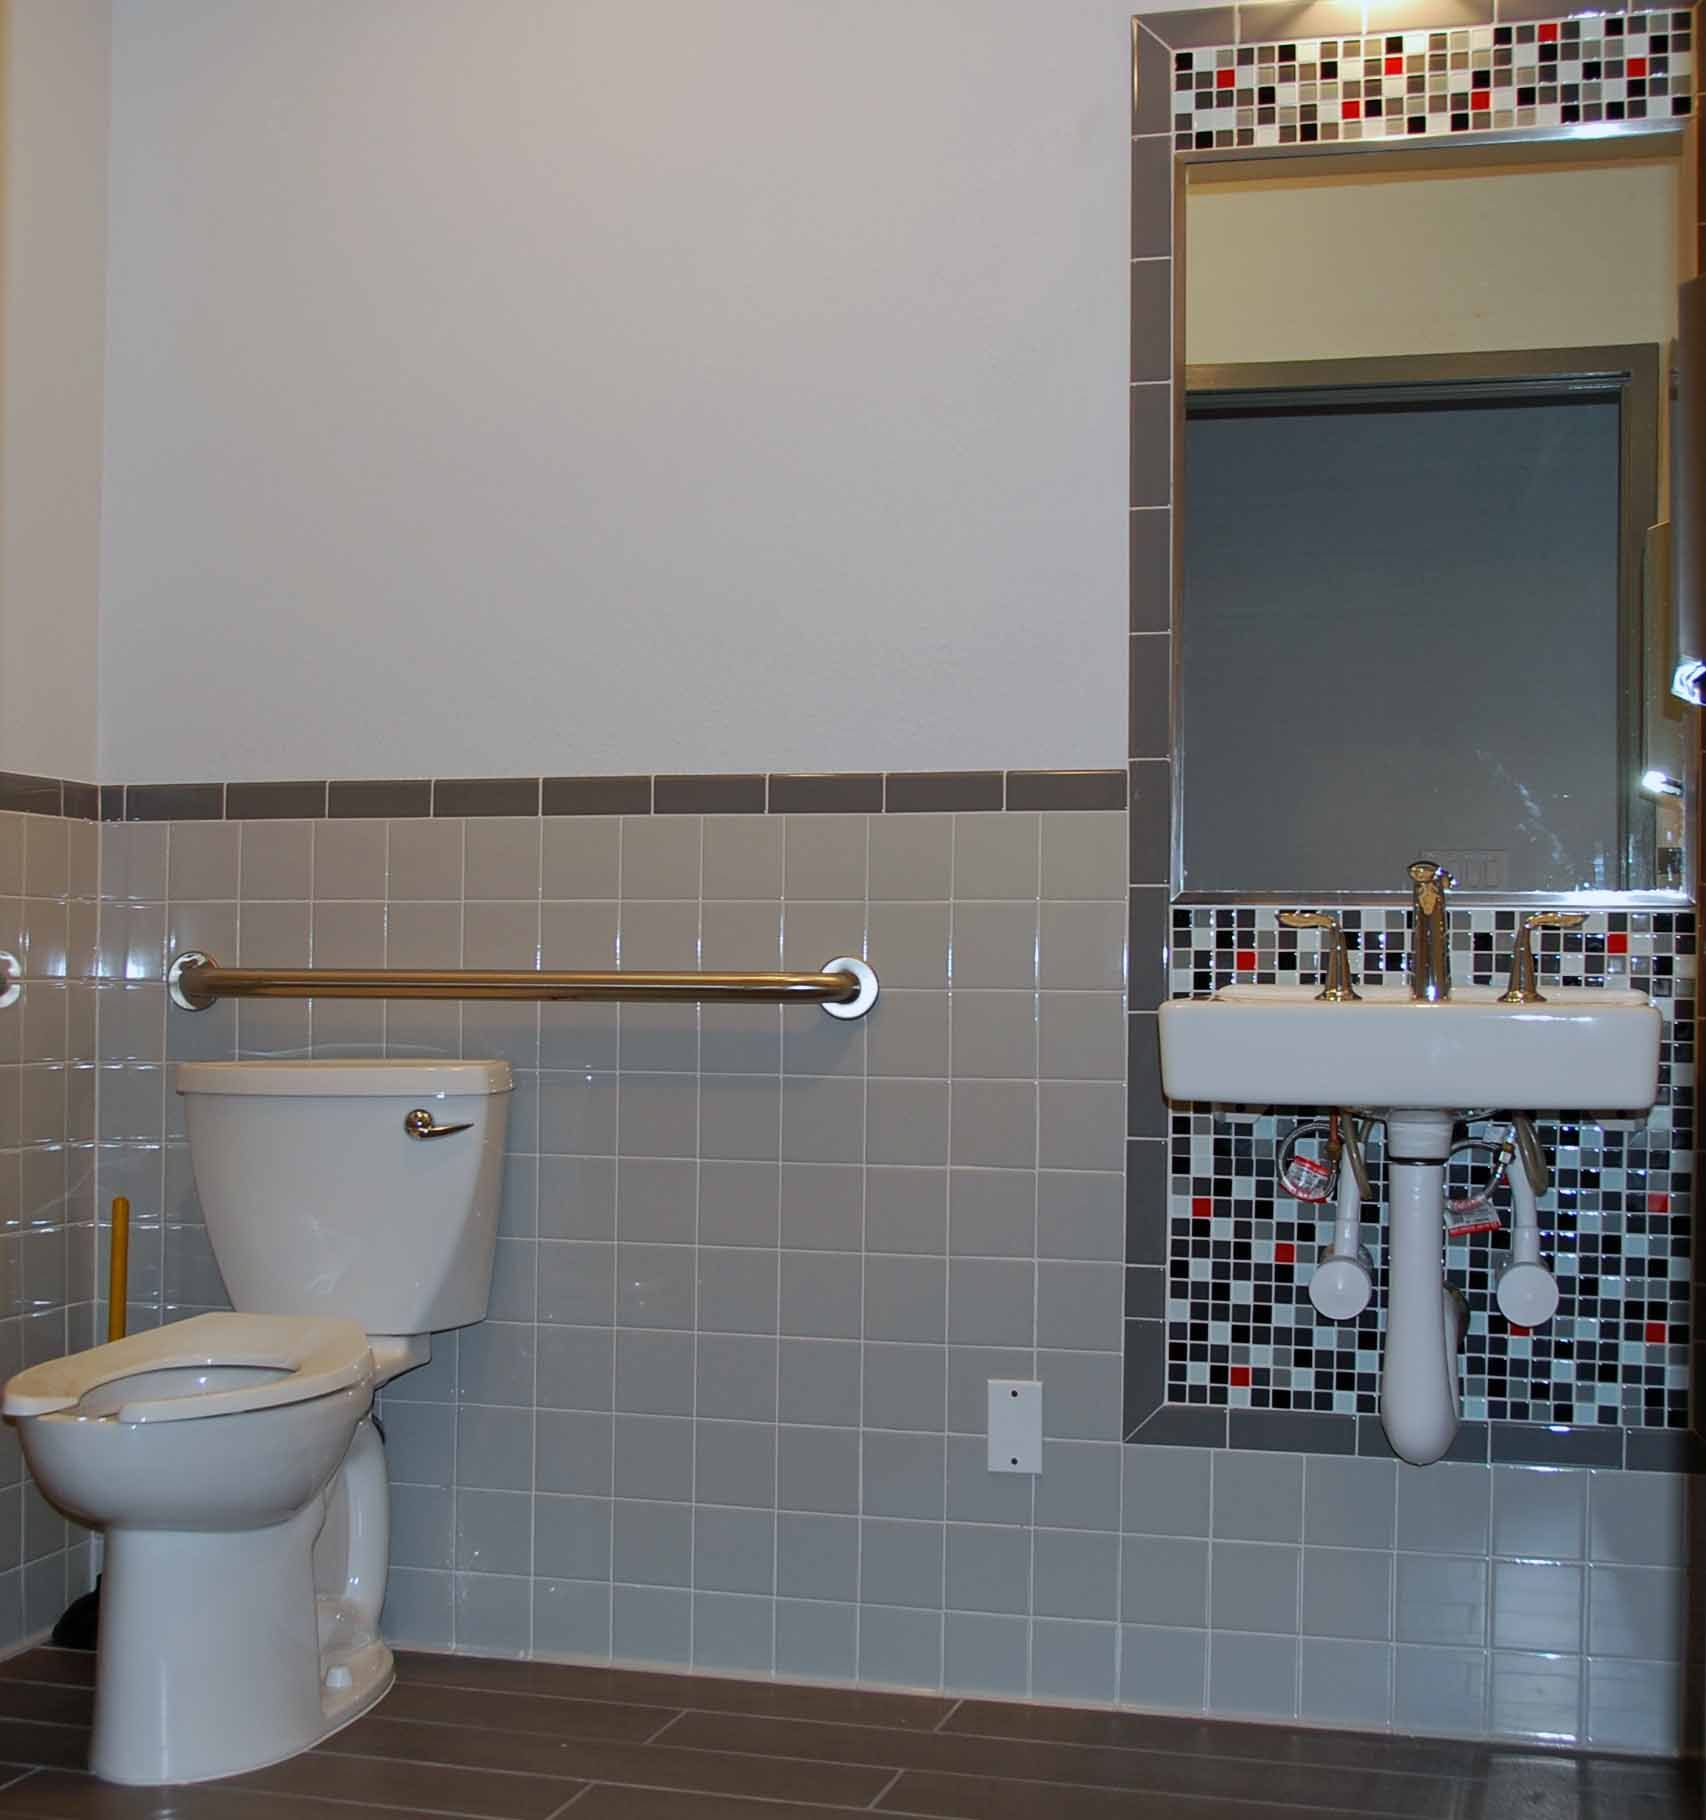 commercial bathroom tile cheap amp cheerful tile design for an ada bathroom 12406